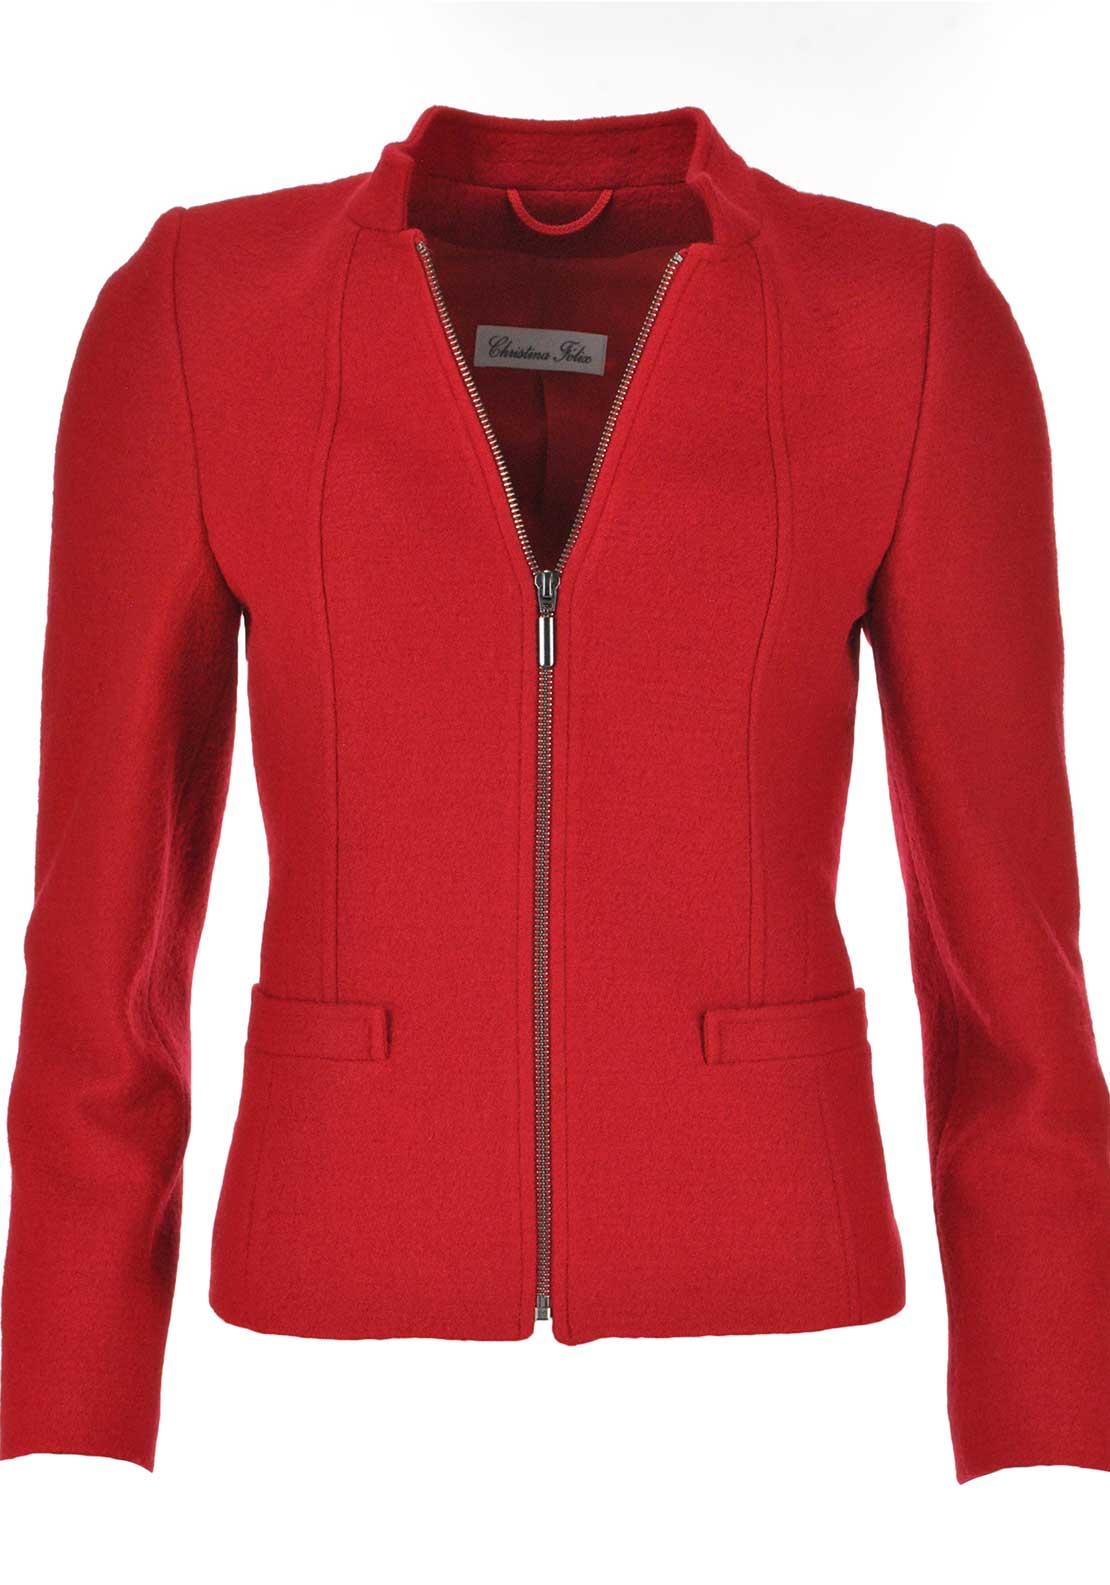 Christina Felix Wool Blend Zip Front Jacket, Red